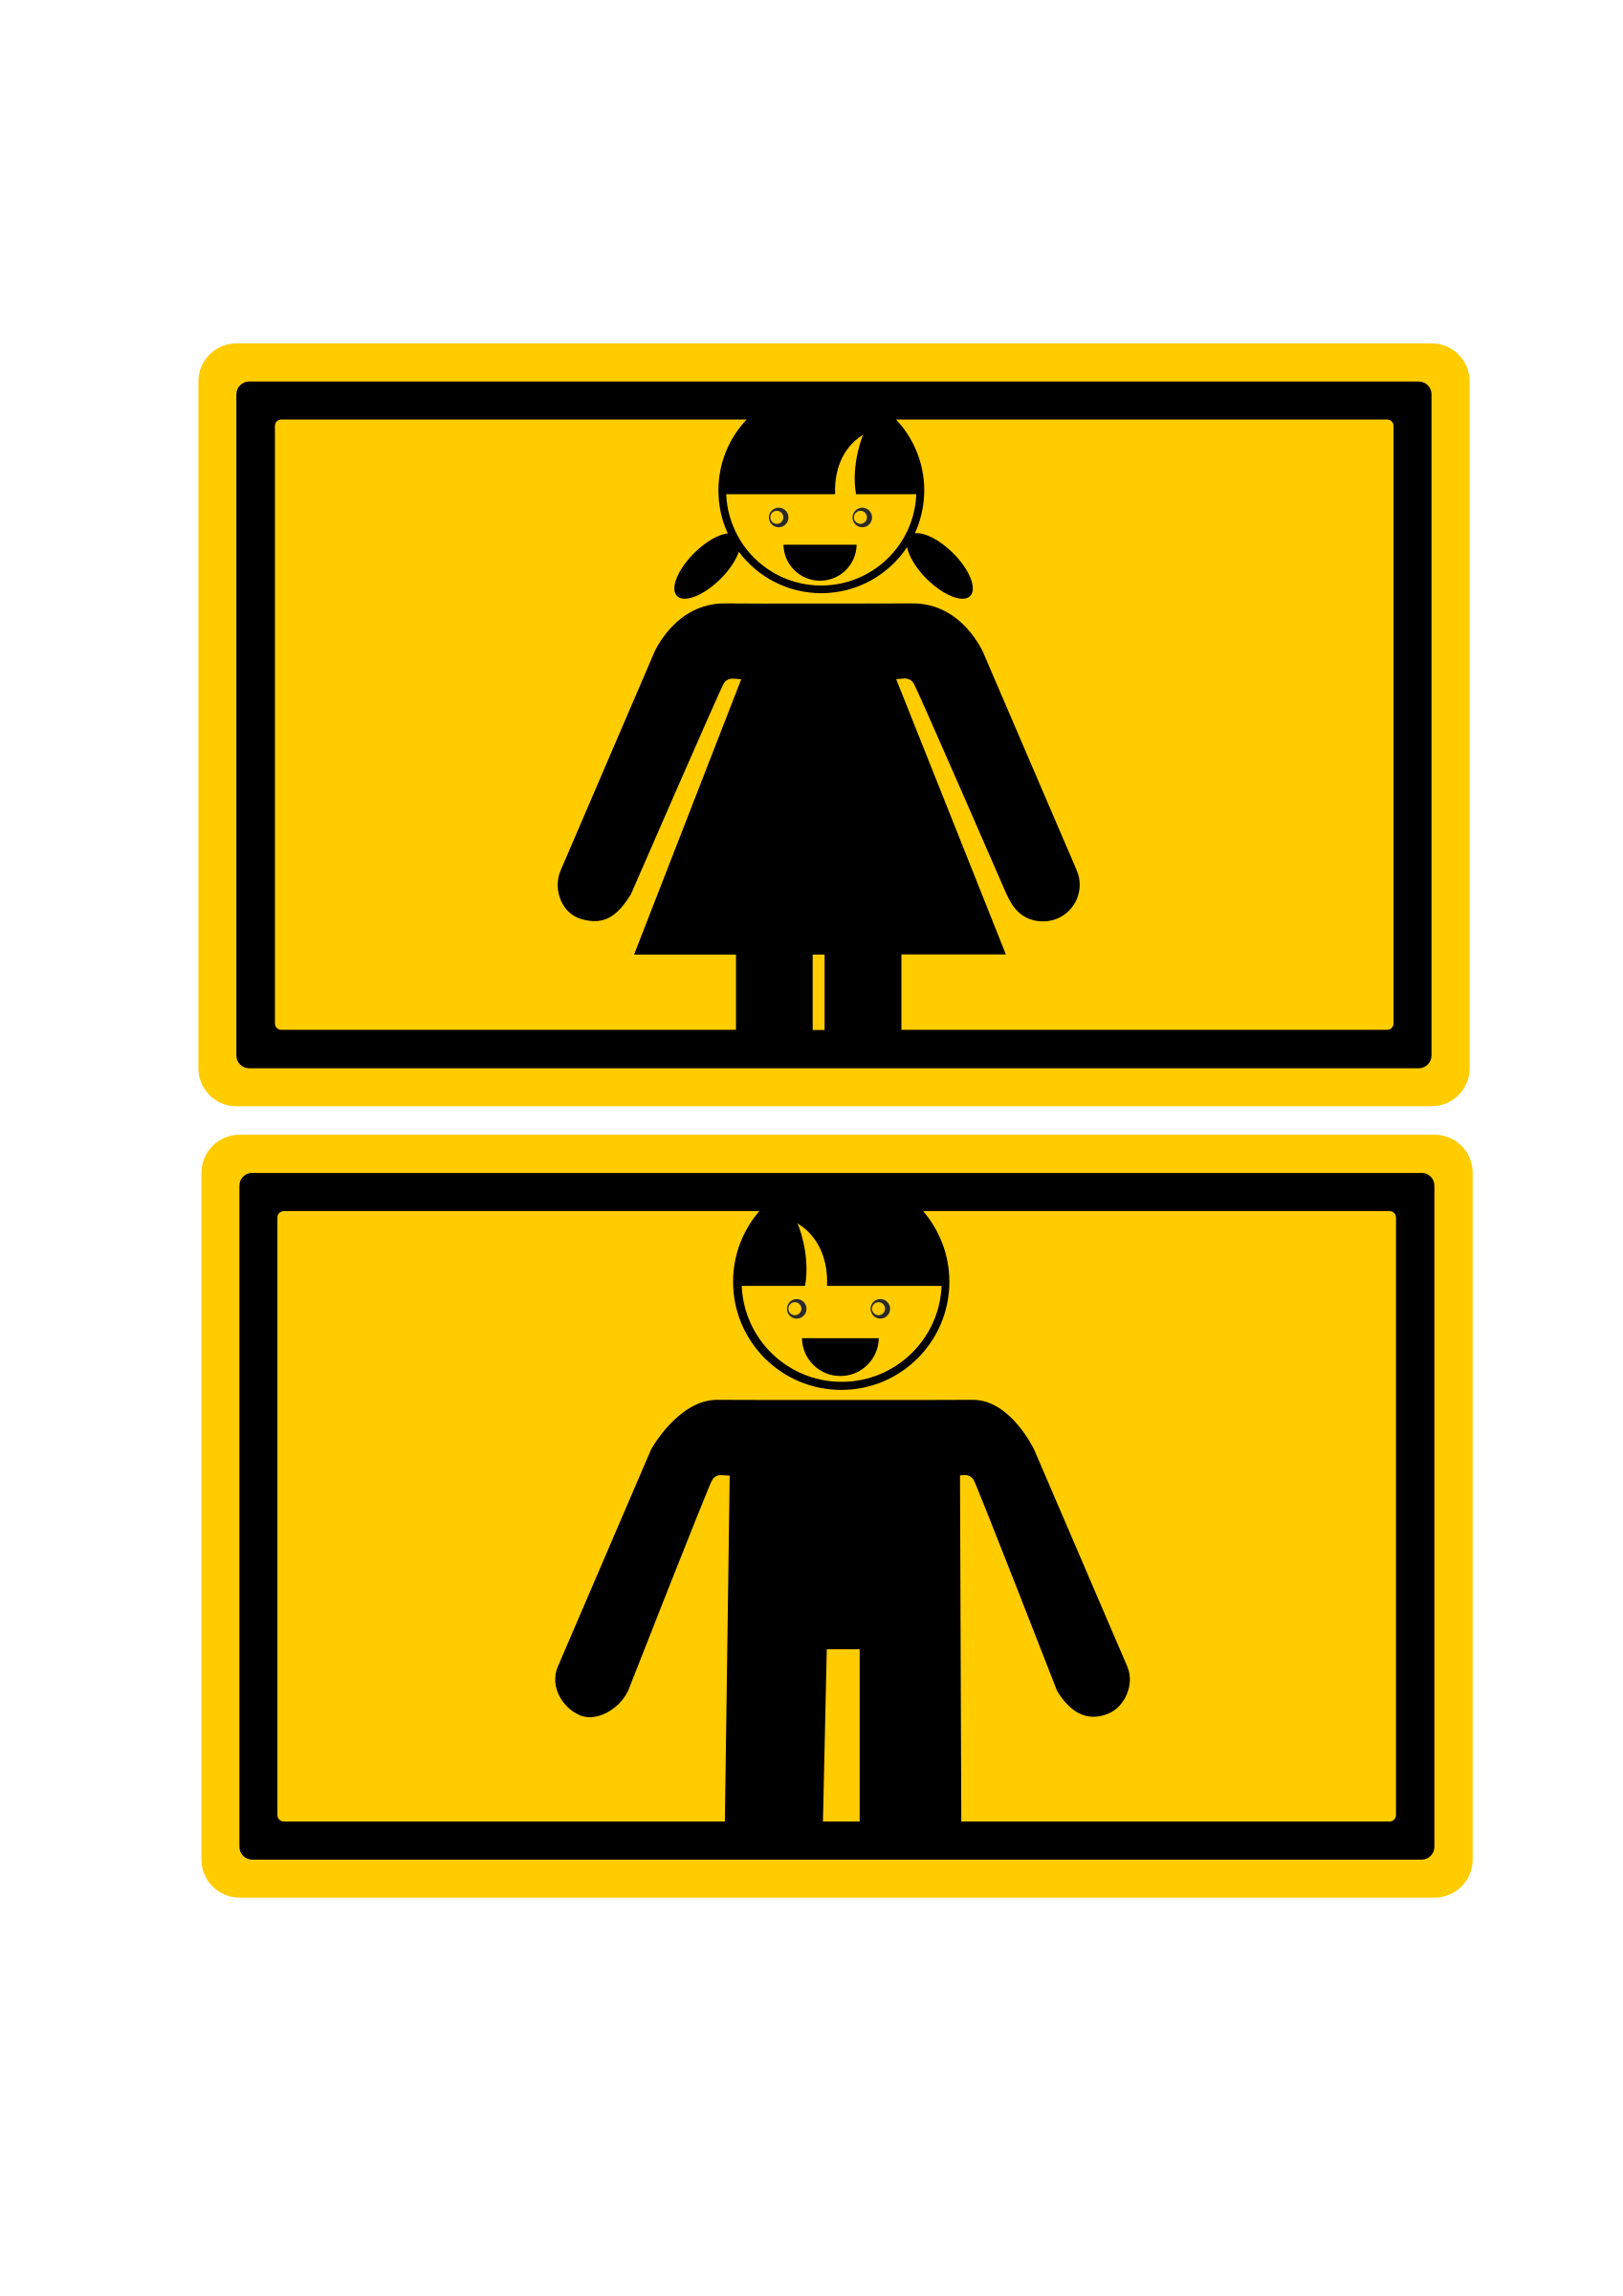 Man and Woman Sign by artyom_rzhanov